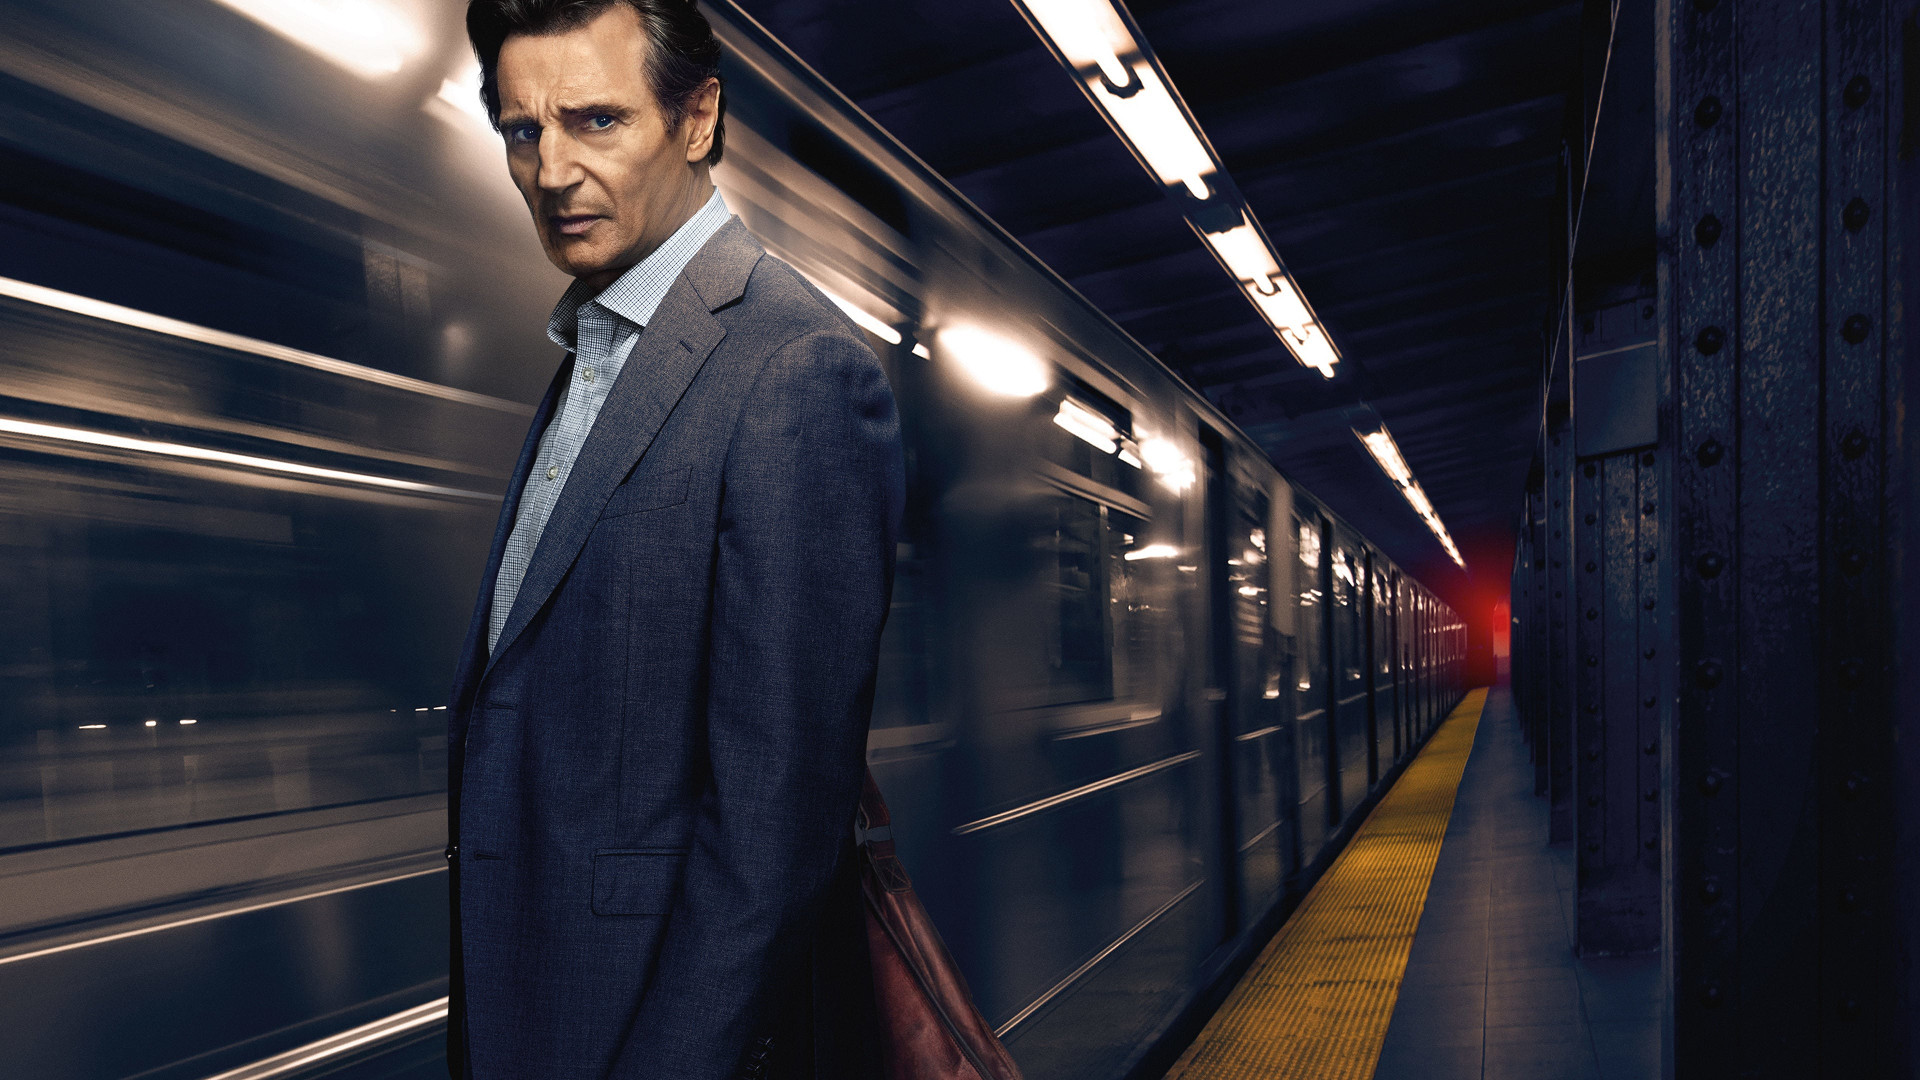 Review – The Commuter (2018)